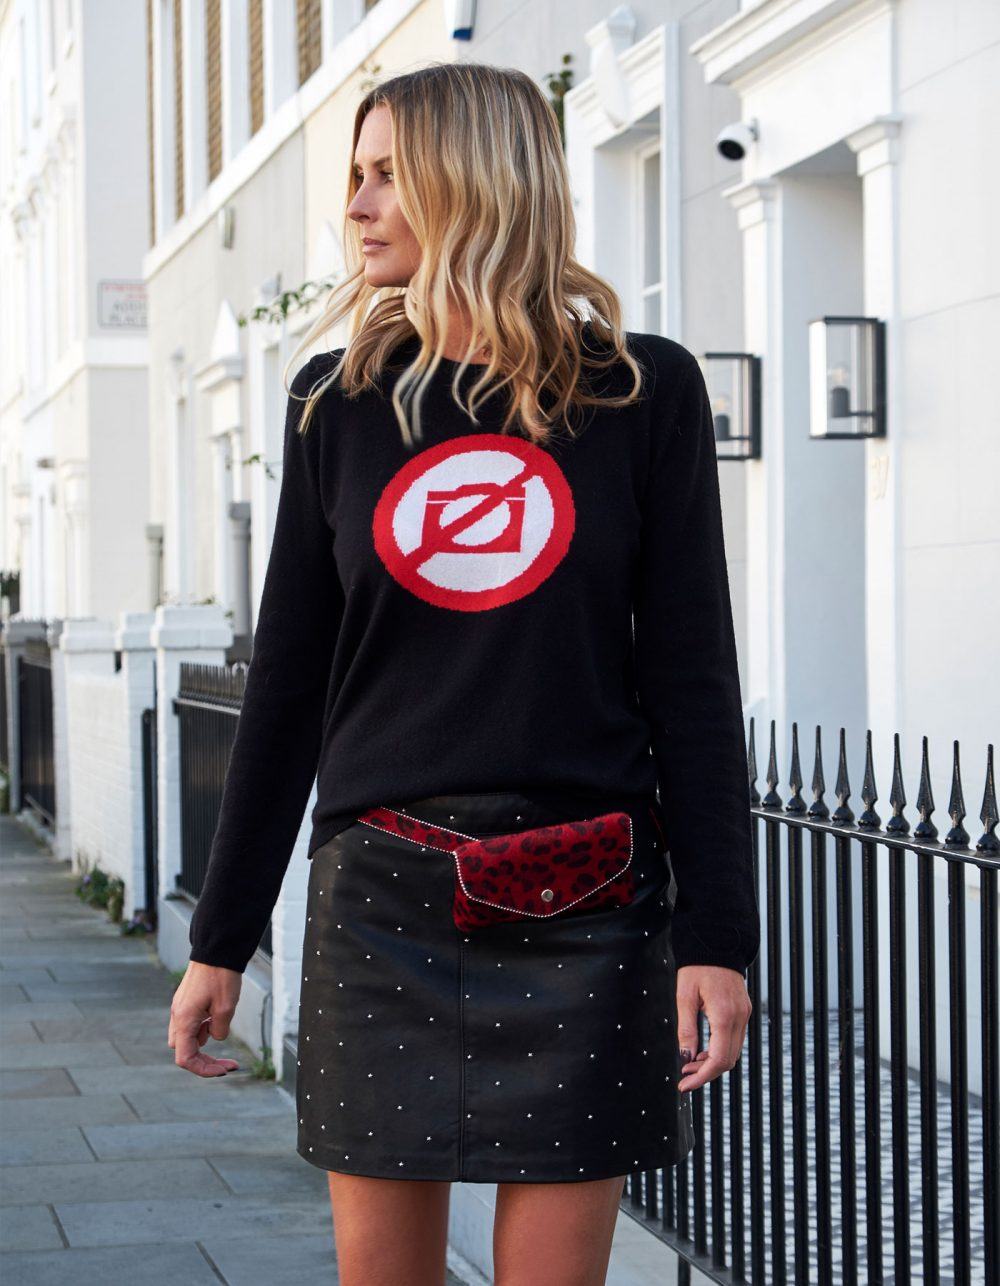 Model on a London street dressed in malin darlin designer cashmere, the No Photos black cashmere jumper.